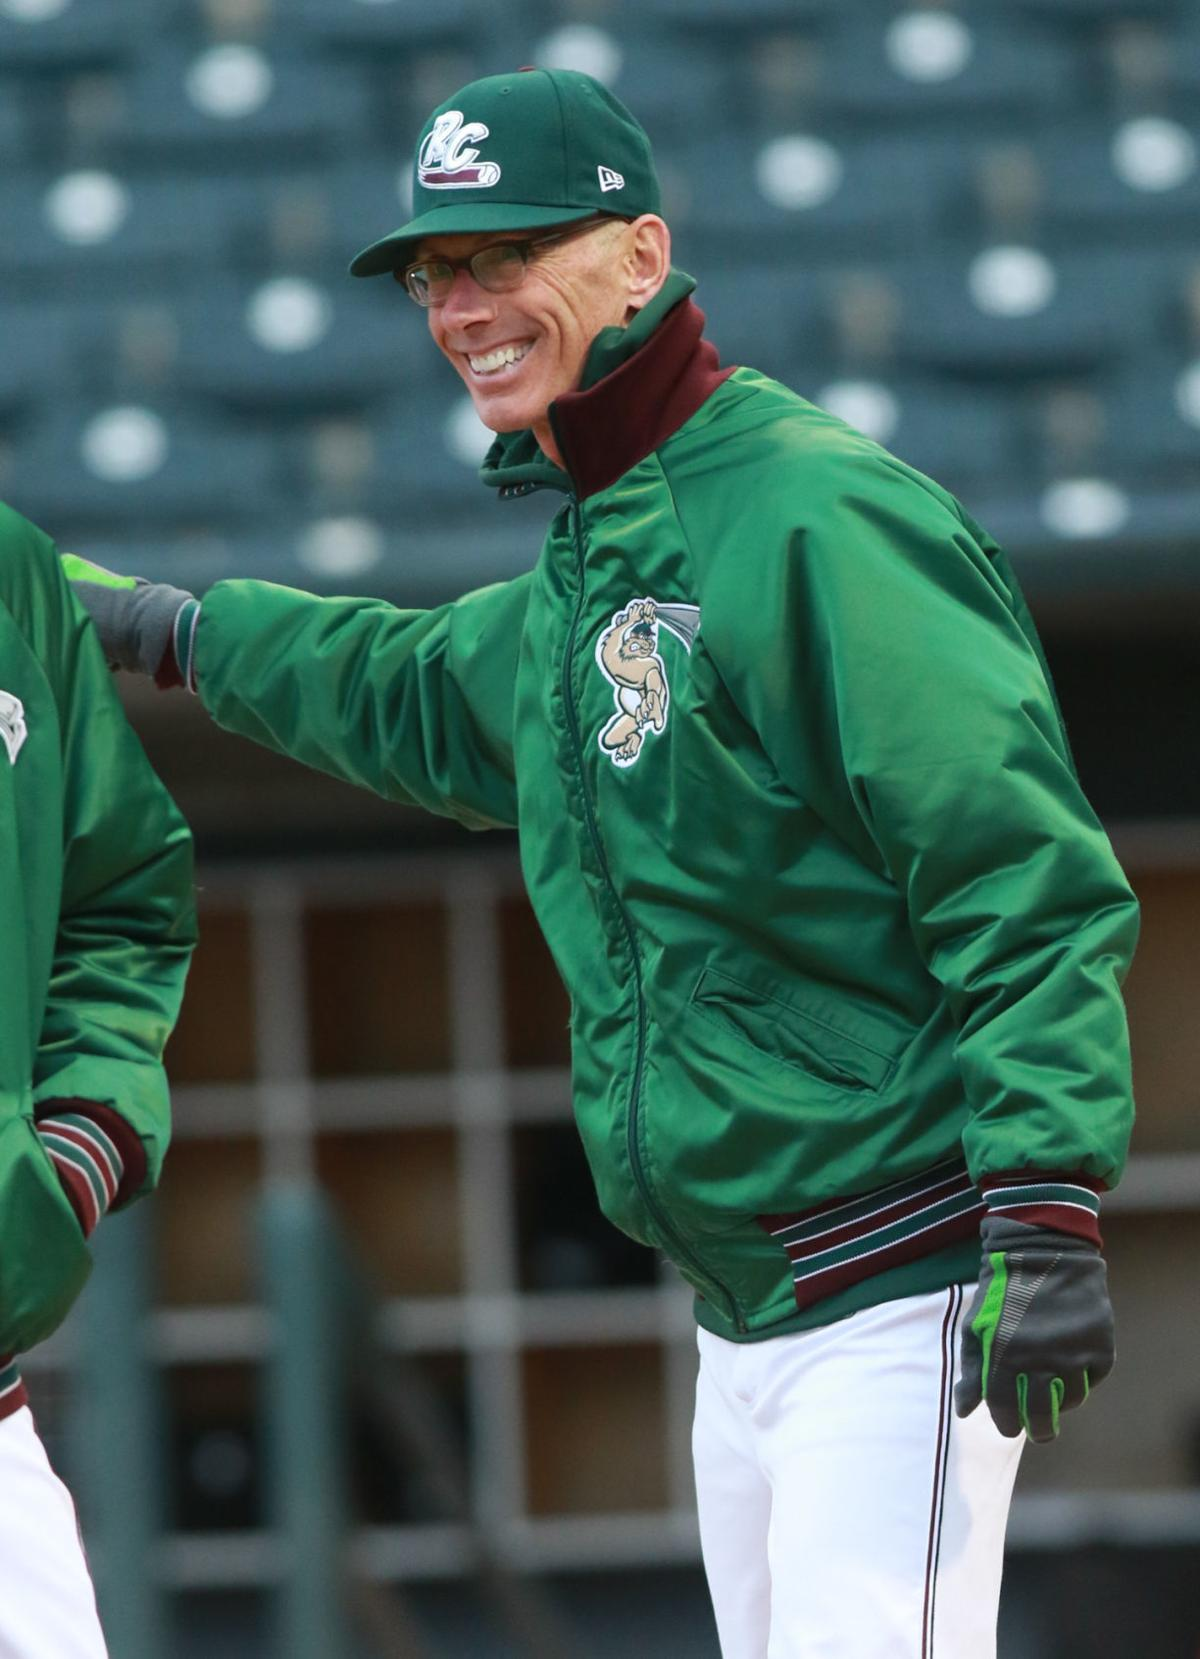 The RailCats' manager Greg Tagert